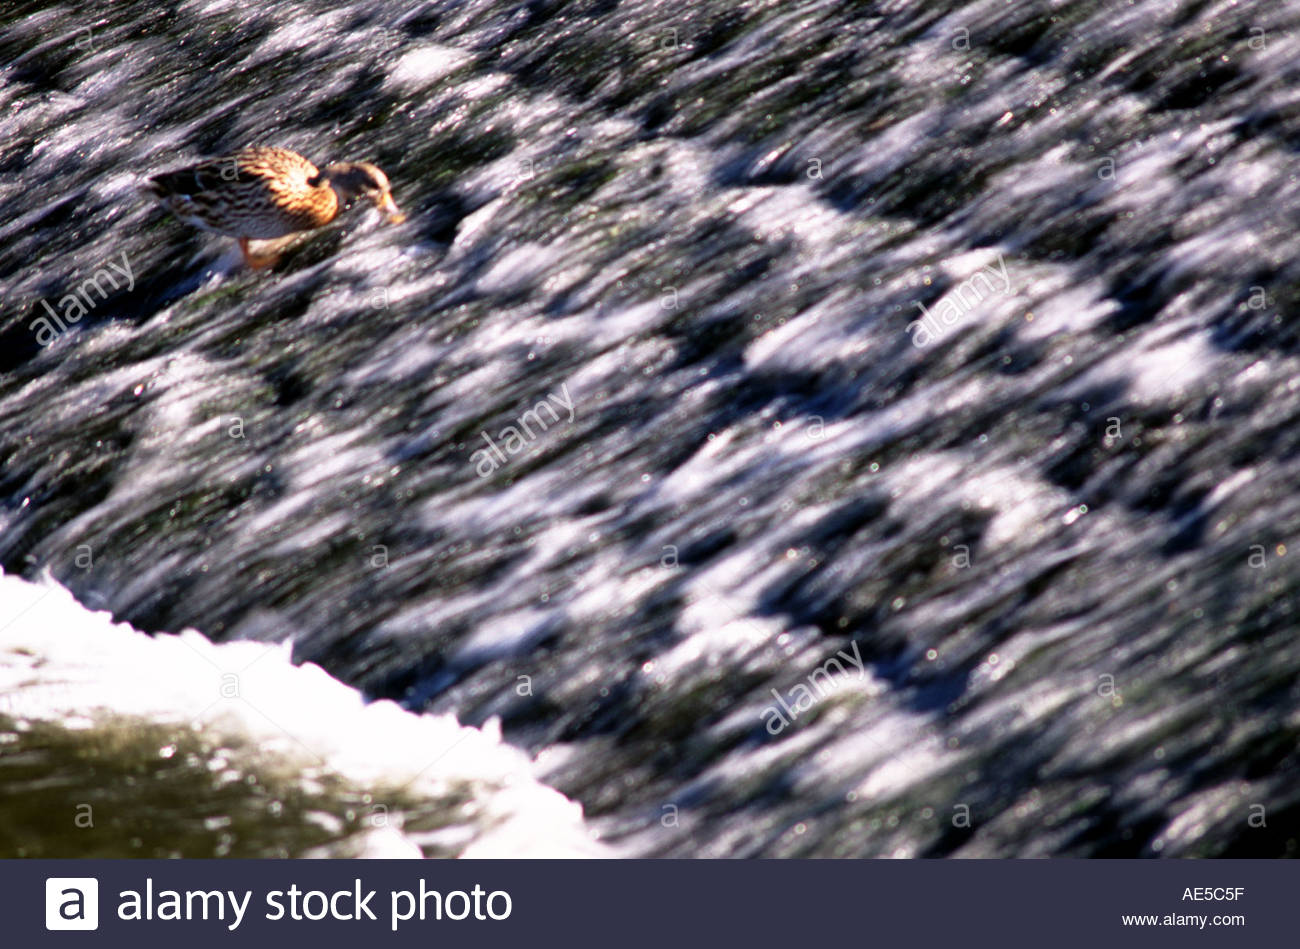 Life on a river medway weir United Kingdom Stock Photo